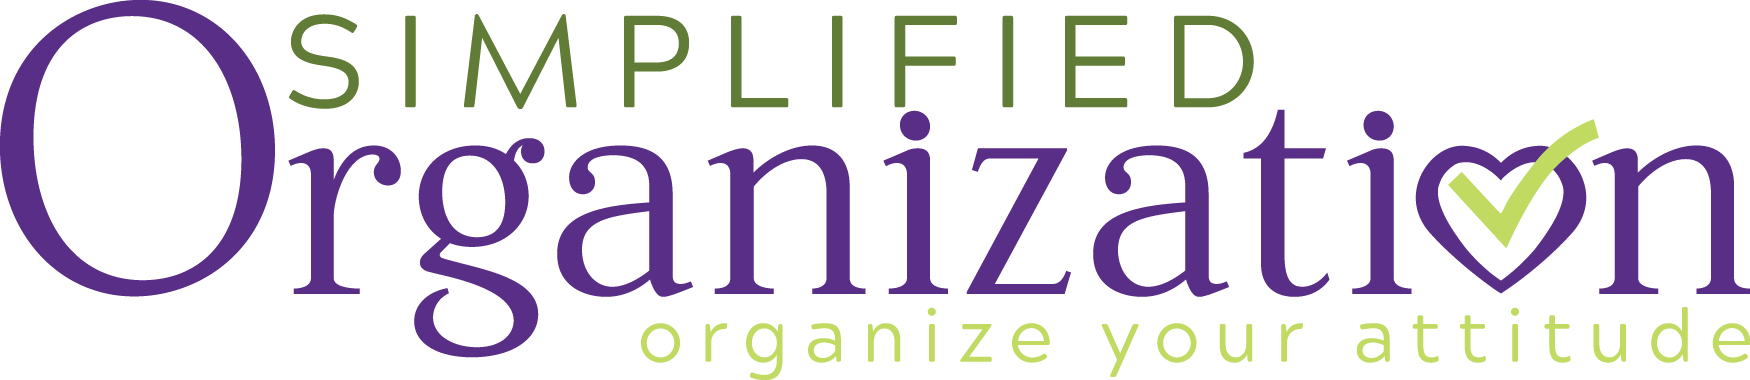 Simplified Organization